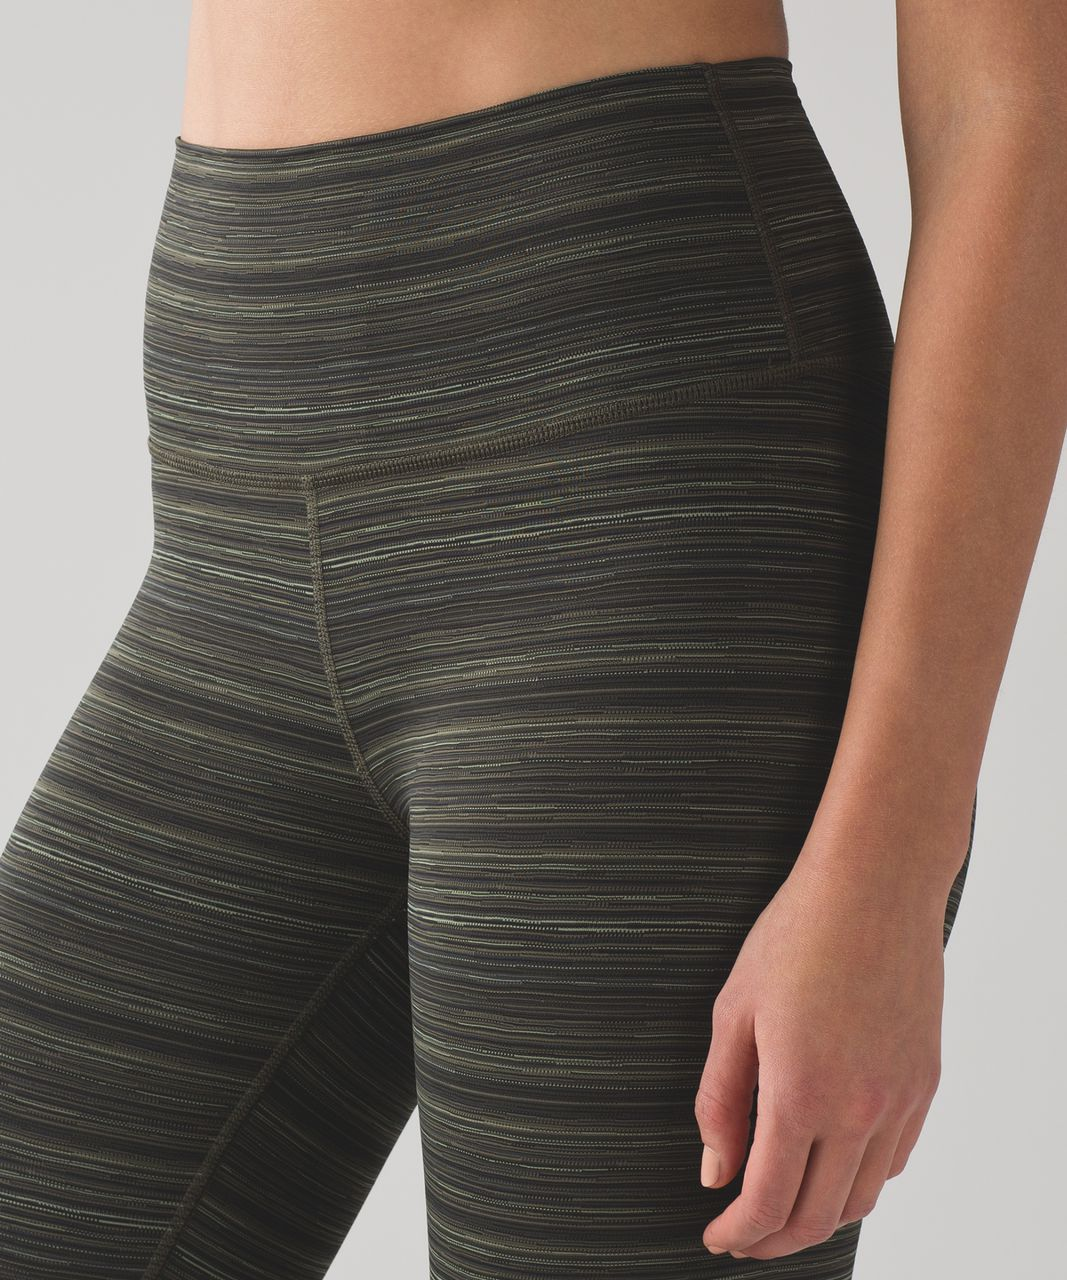 Lululemon High Times Pant (Luxtreme) - Cyber Stripe Gator Green Black